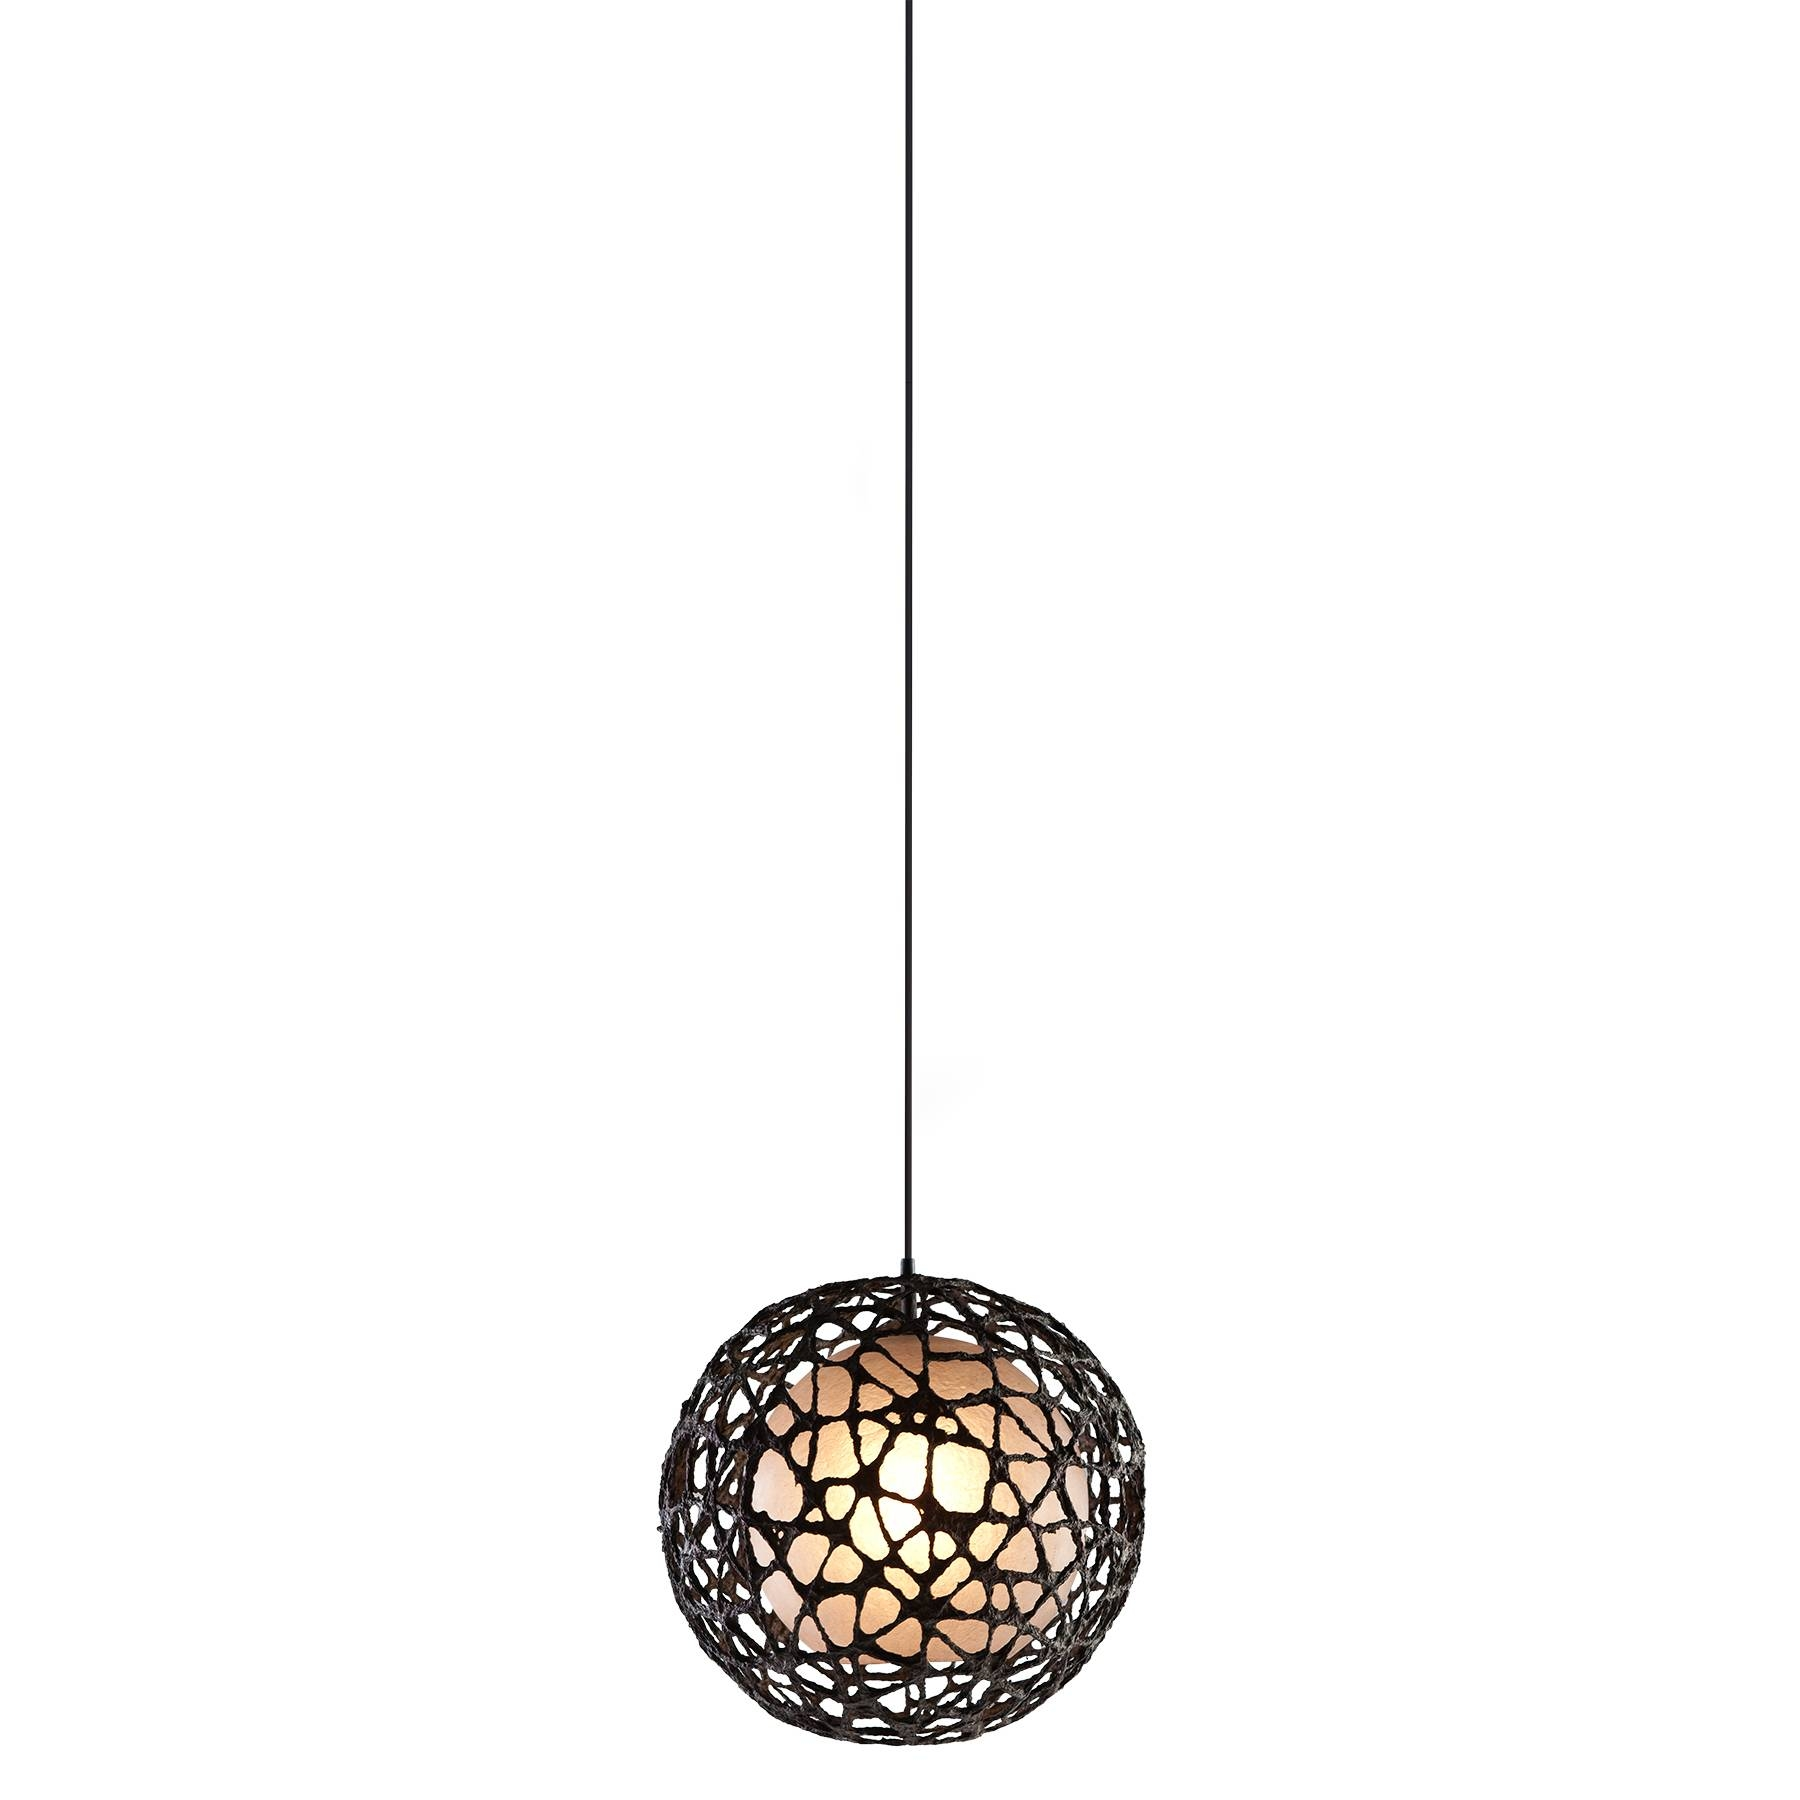 Epic Round Pendant Light 54 For Island Pendant Light With Round in Epic Lamps Pendant Lights (Image 10 of 15)